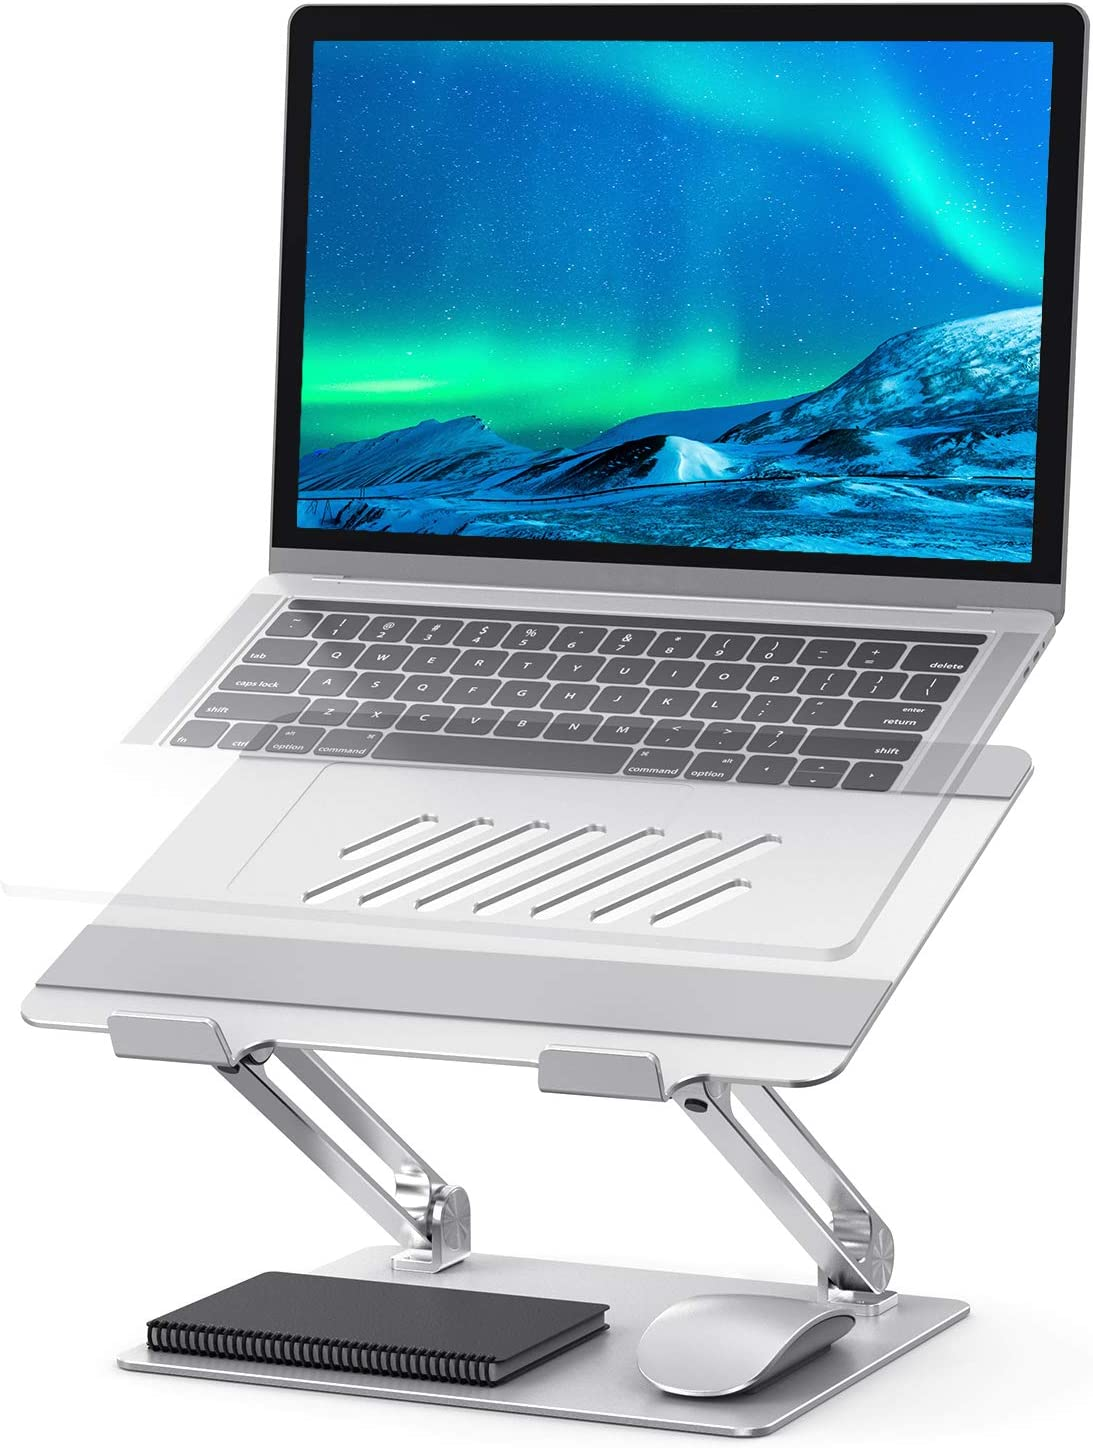 "Adjustable Laptop Stand, POVO Ergonomic Portable Notebook Stand with Heat-Vent, Heavy Duty Laptop Holder Compatible with MacBook Air/Pro, Dell, HP, Samsung, Lenovo More 10-17"" Laptops (Silver)"